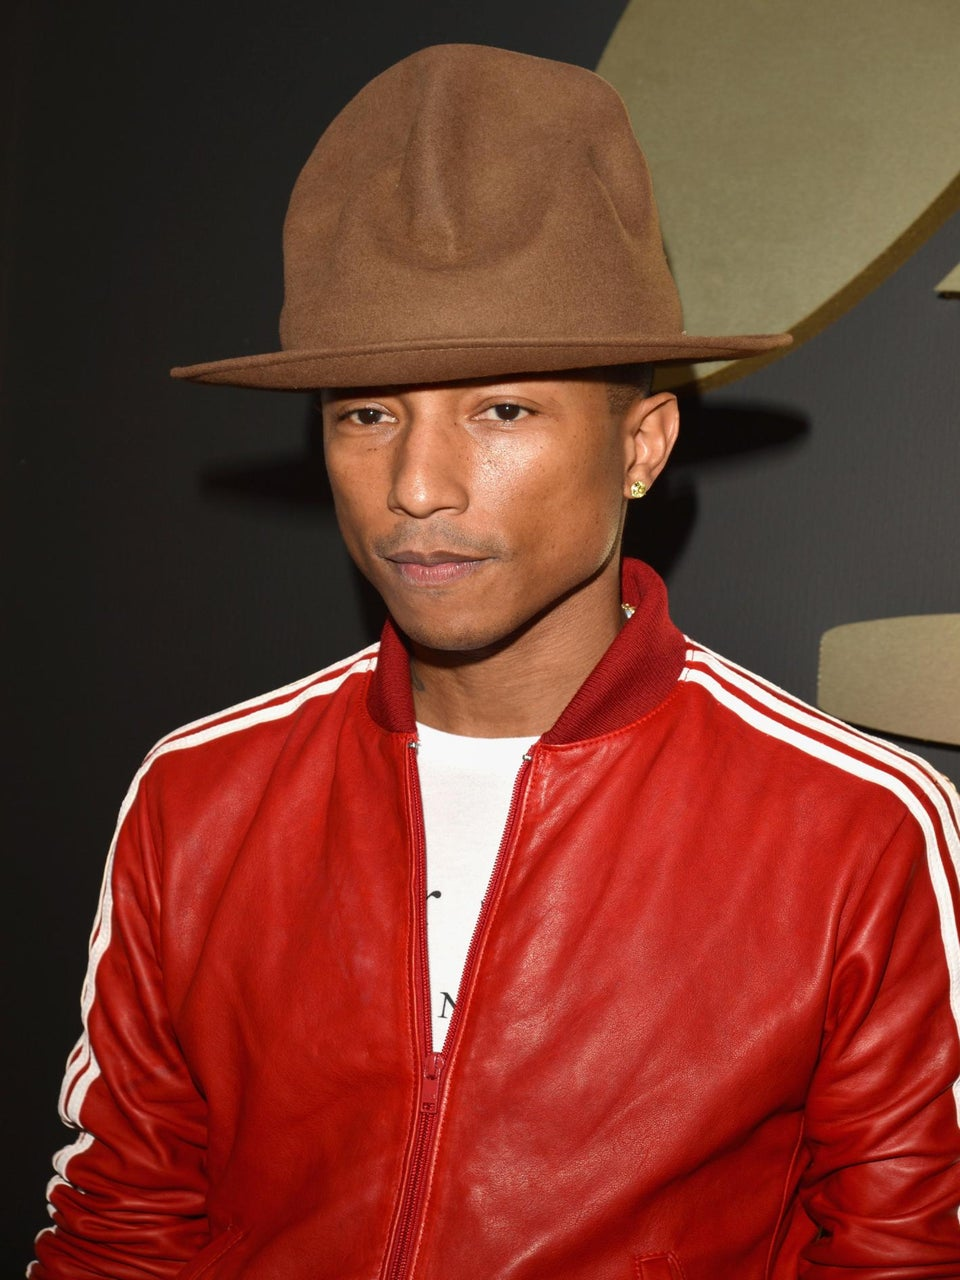 Pharrell To Perform at the Oscars